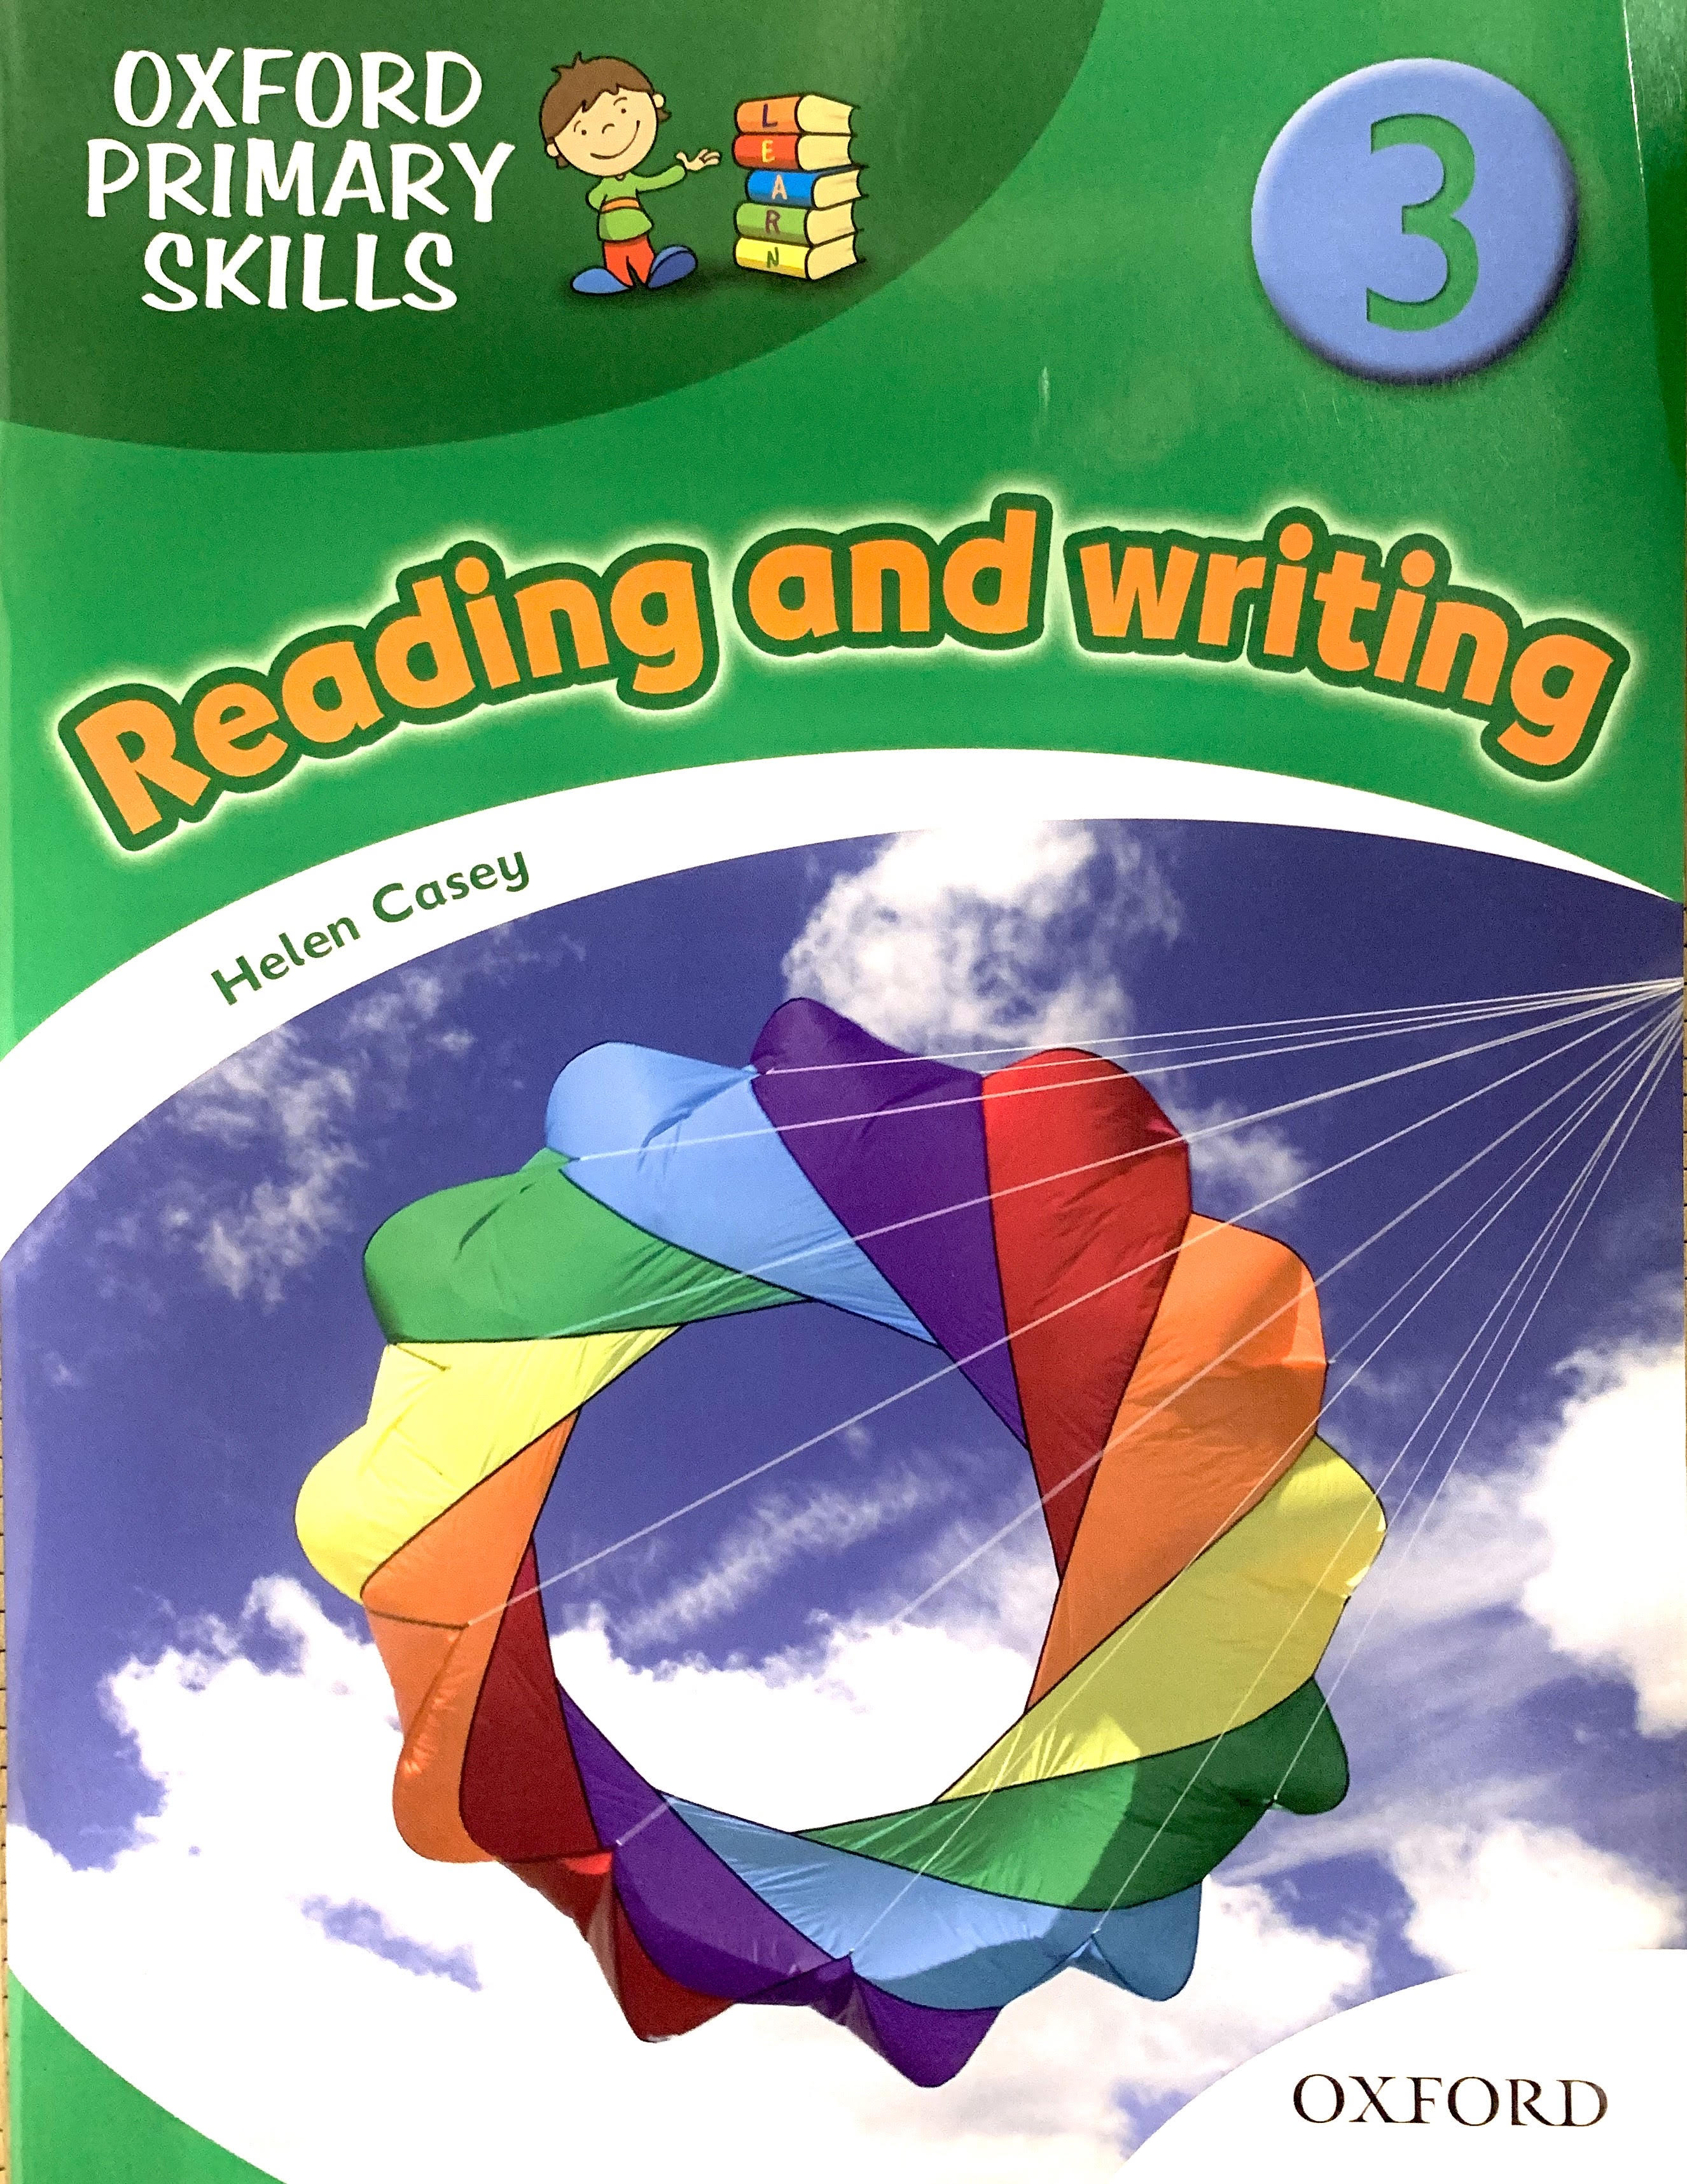 oxford Primary skills Reading and Writing 3